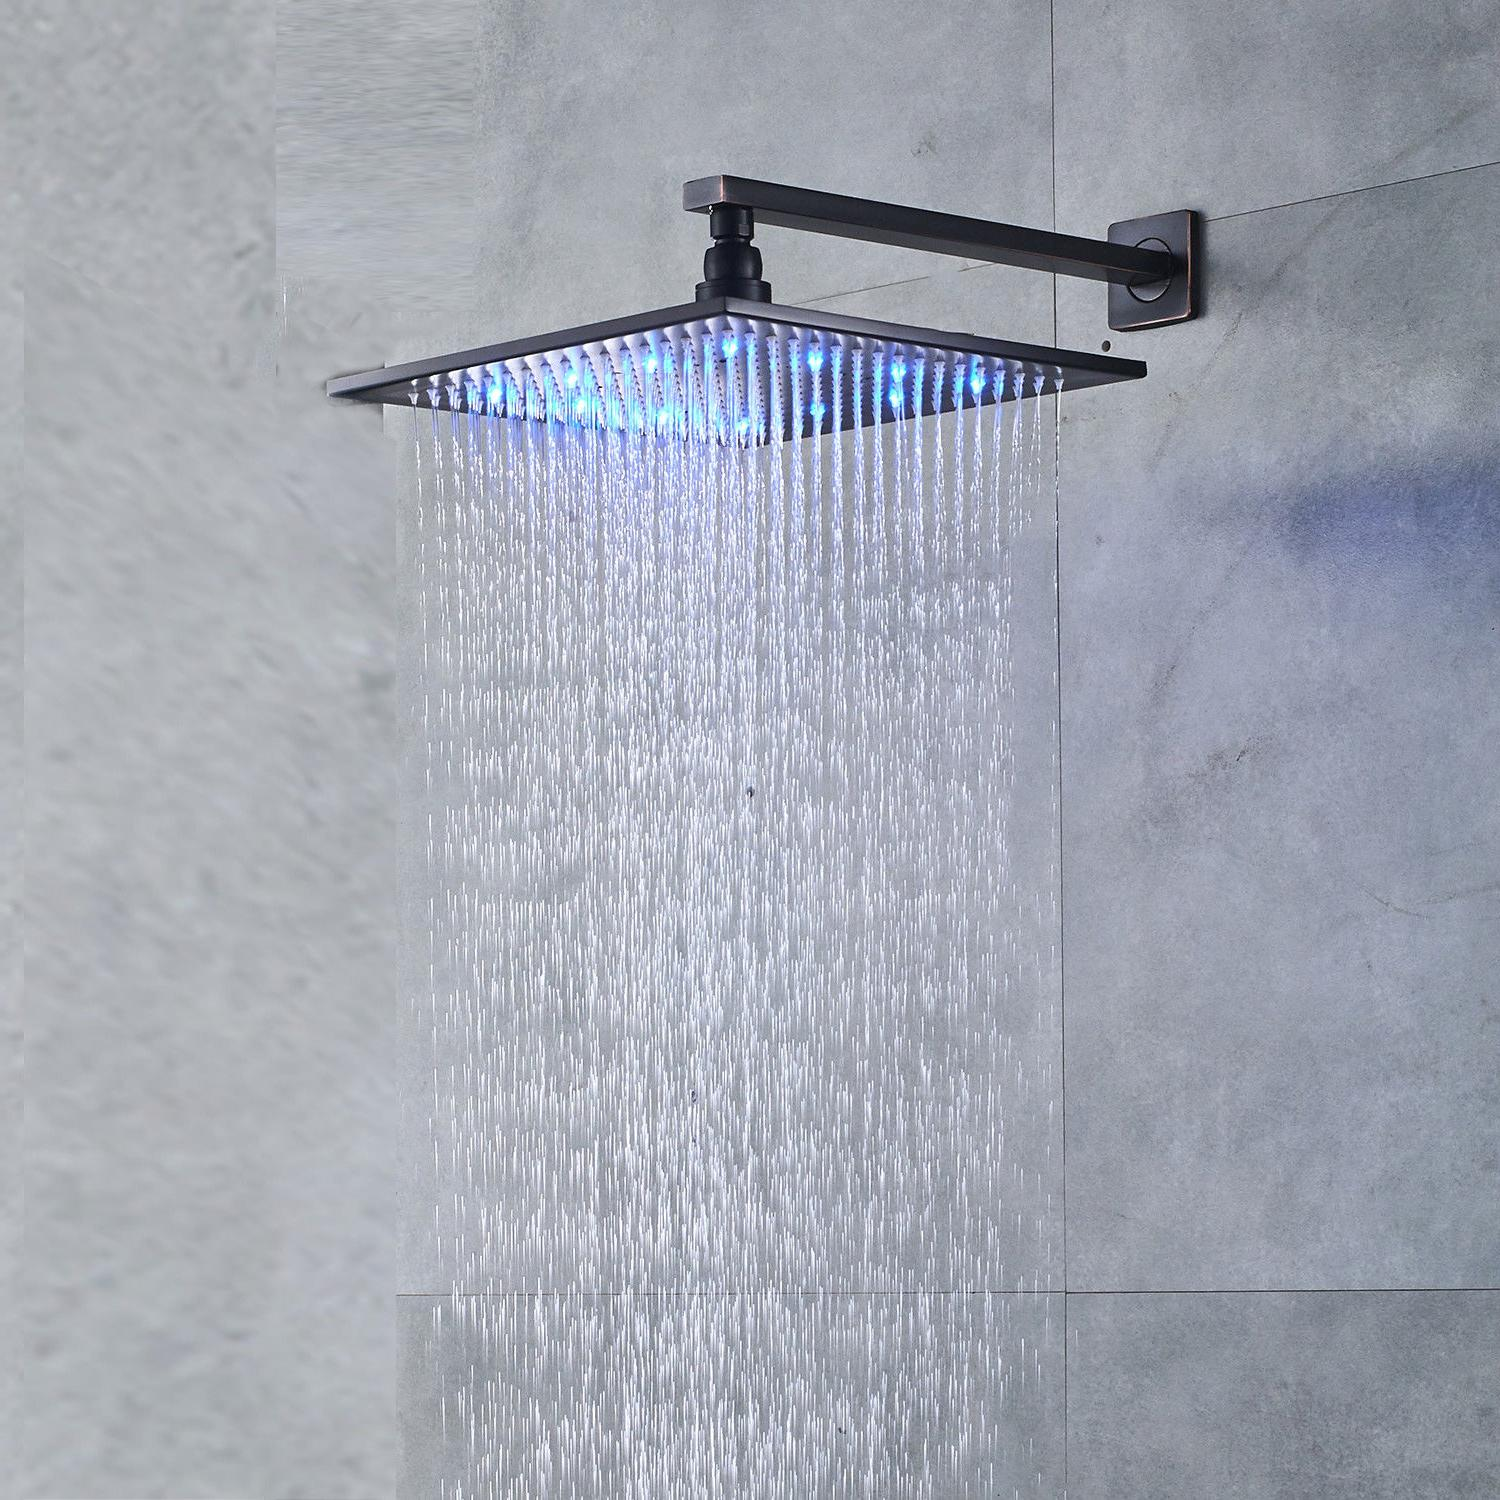 Led Rainfall Shower Wall Mounted Shower Faucet With